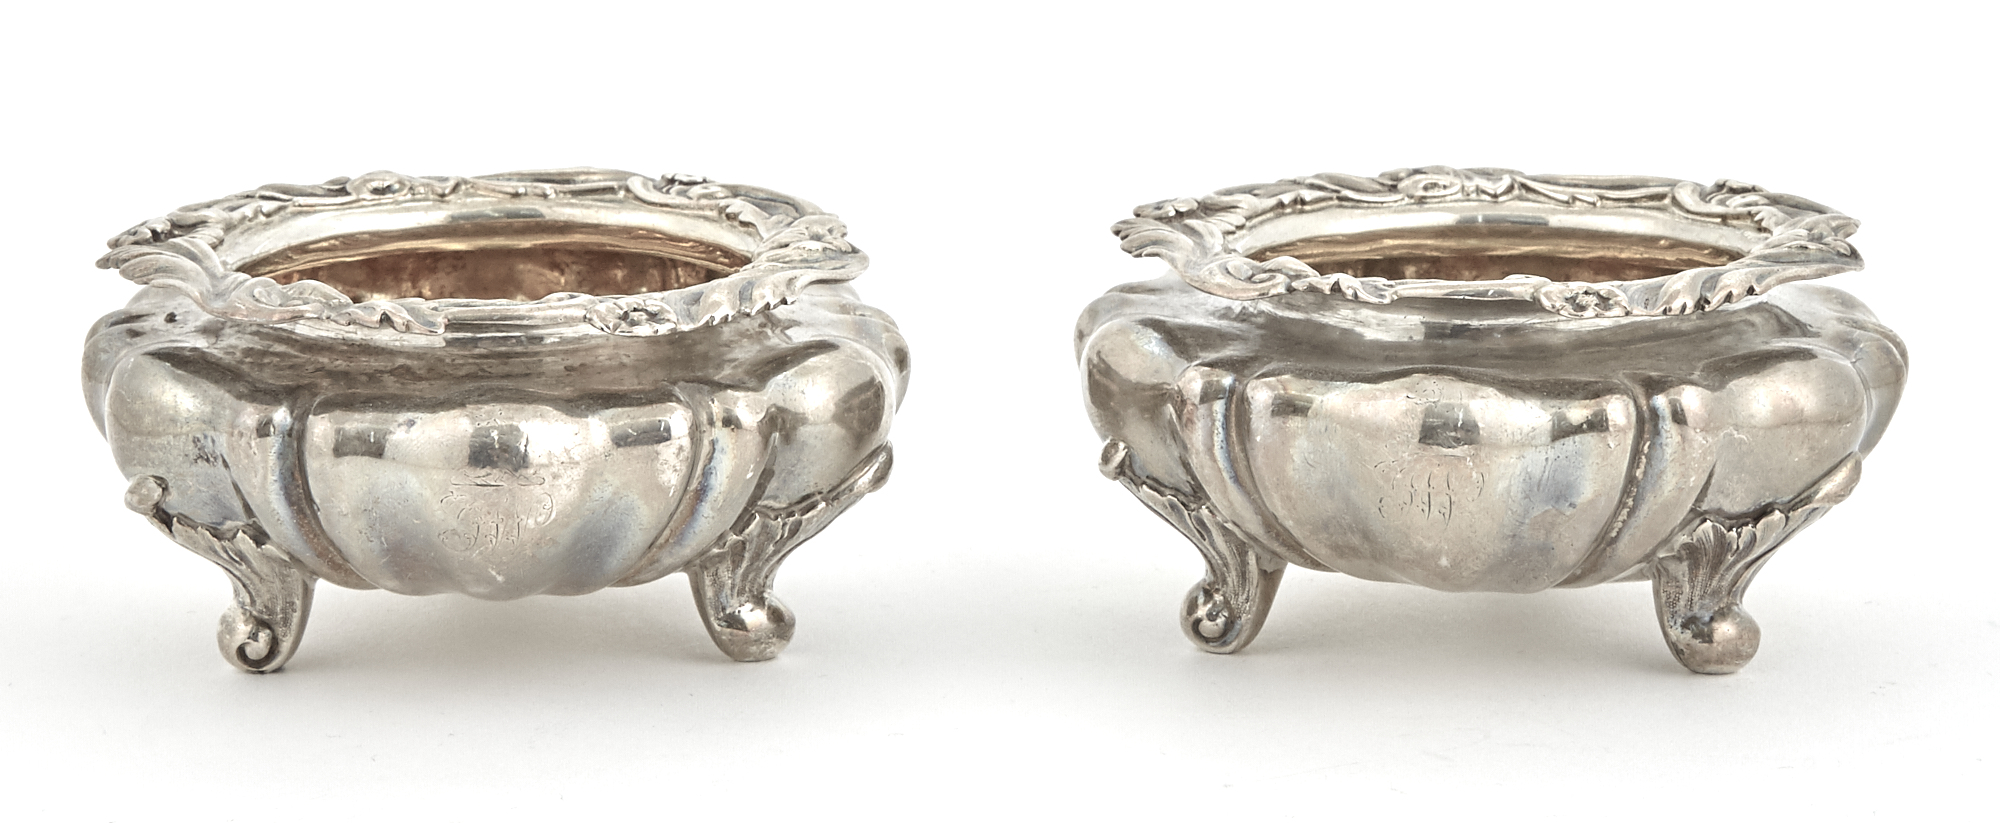 Lot image - Pair of William IV Sterling Silver Master Salt Cellars